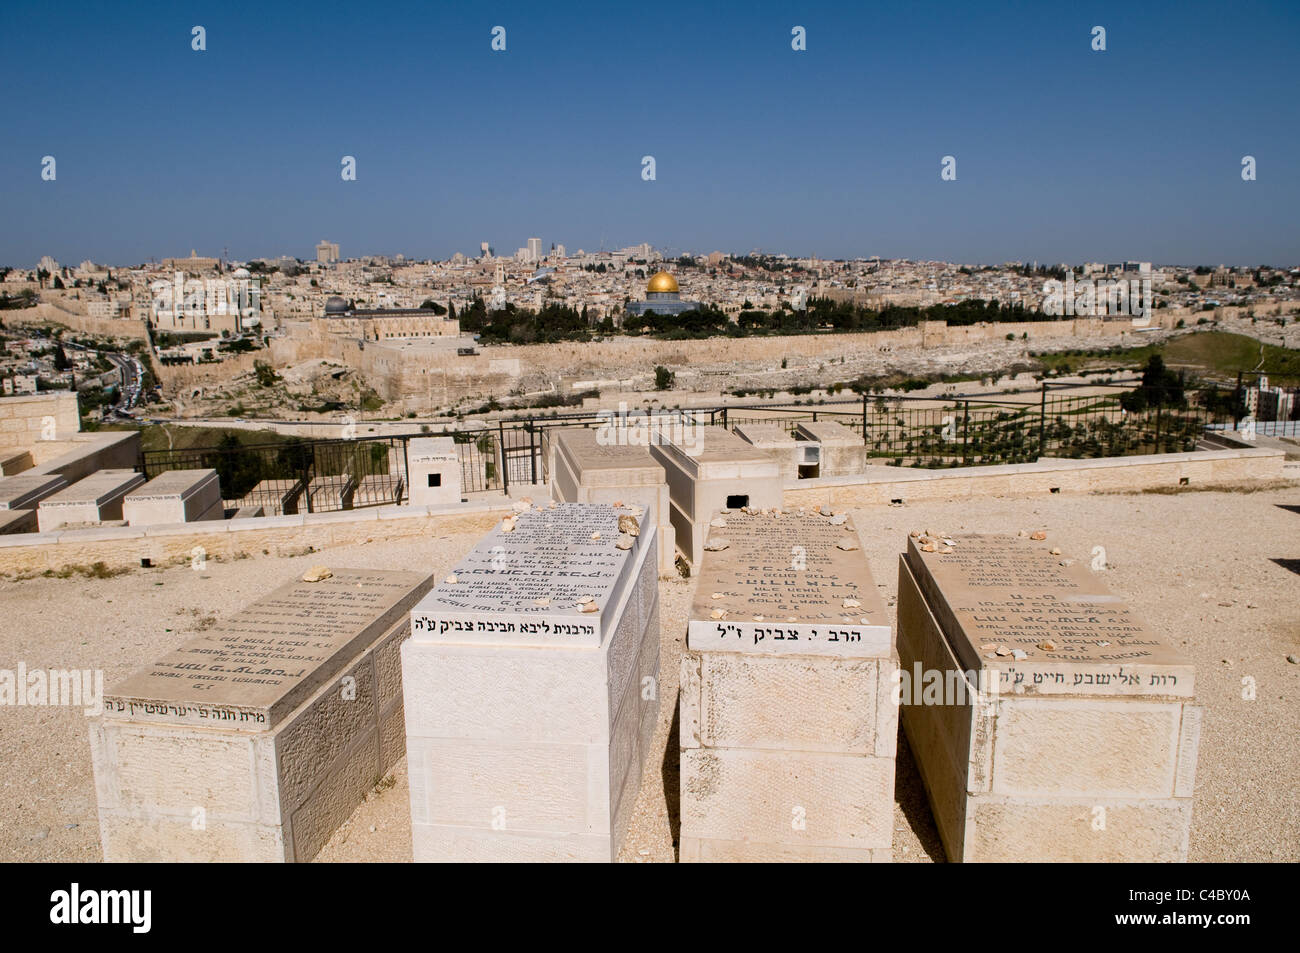 A view of the Temple mount and the old city of Jerusalem as seen from the Jewish cemetery on Mount of olives. - Stock Image